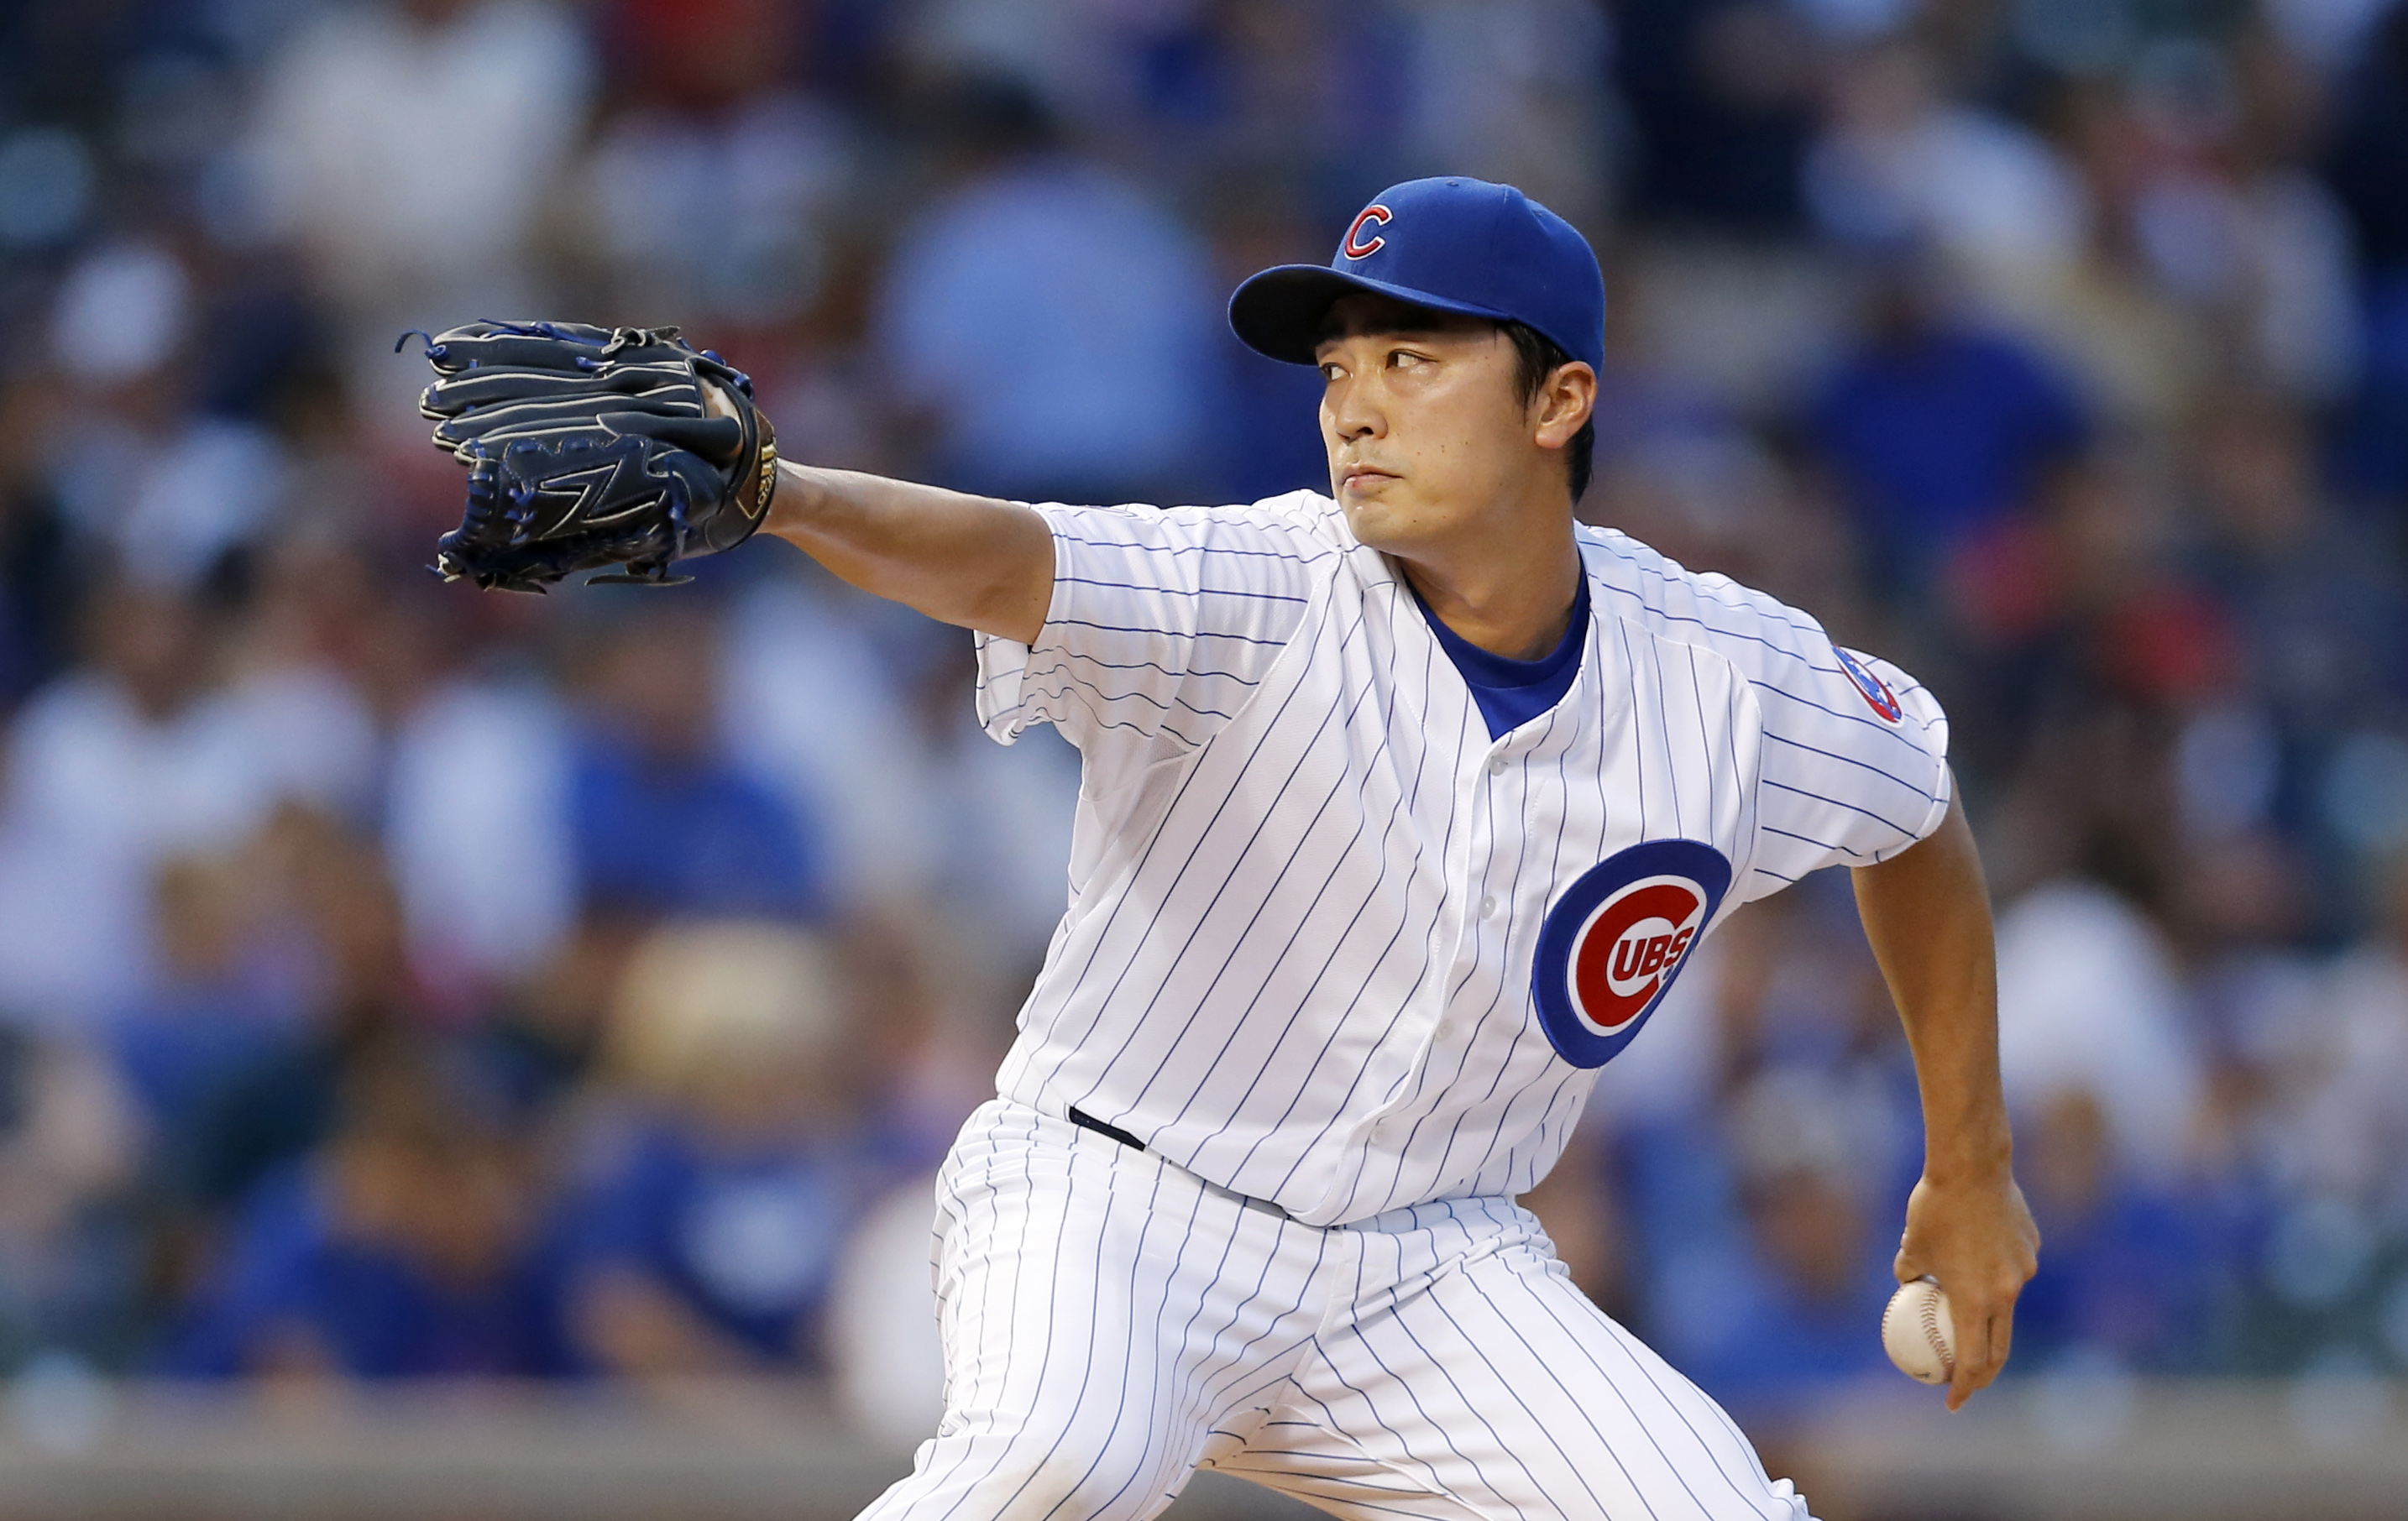 Chicago Cubs starting pitcher Tsuyoshi Wada delivers during the first inning of a baseball game against the Los Angeles Dodgers Monday, June 22, 2015, in Chicago. (AP Photo/Charles Rex Arbogast)